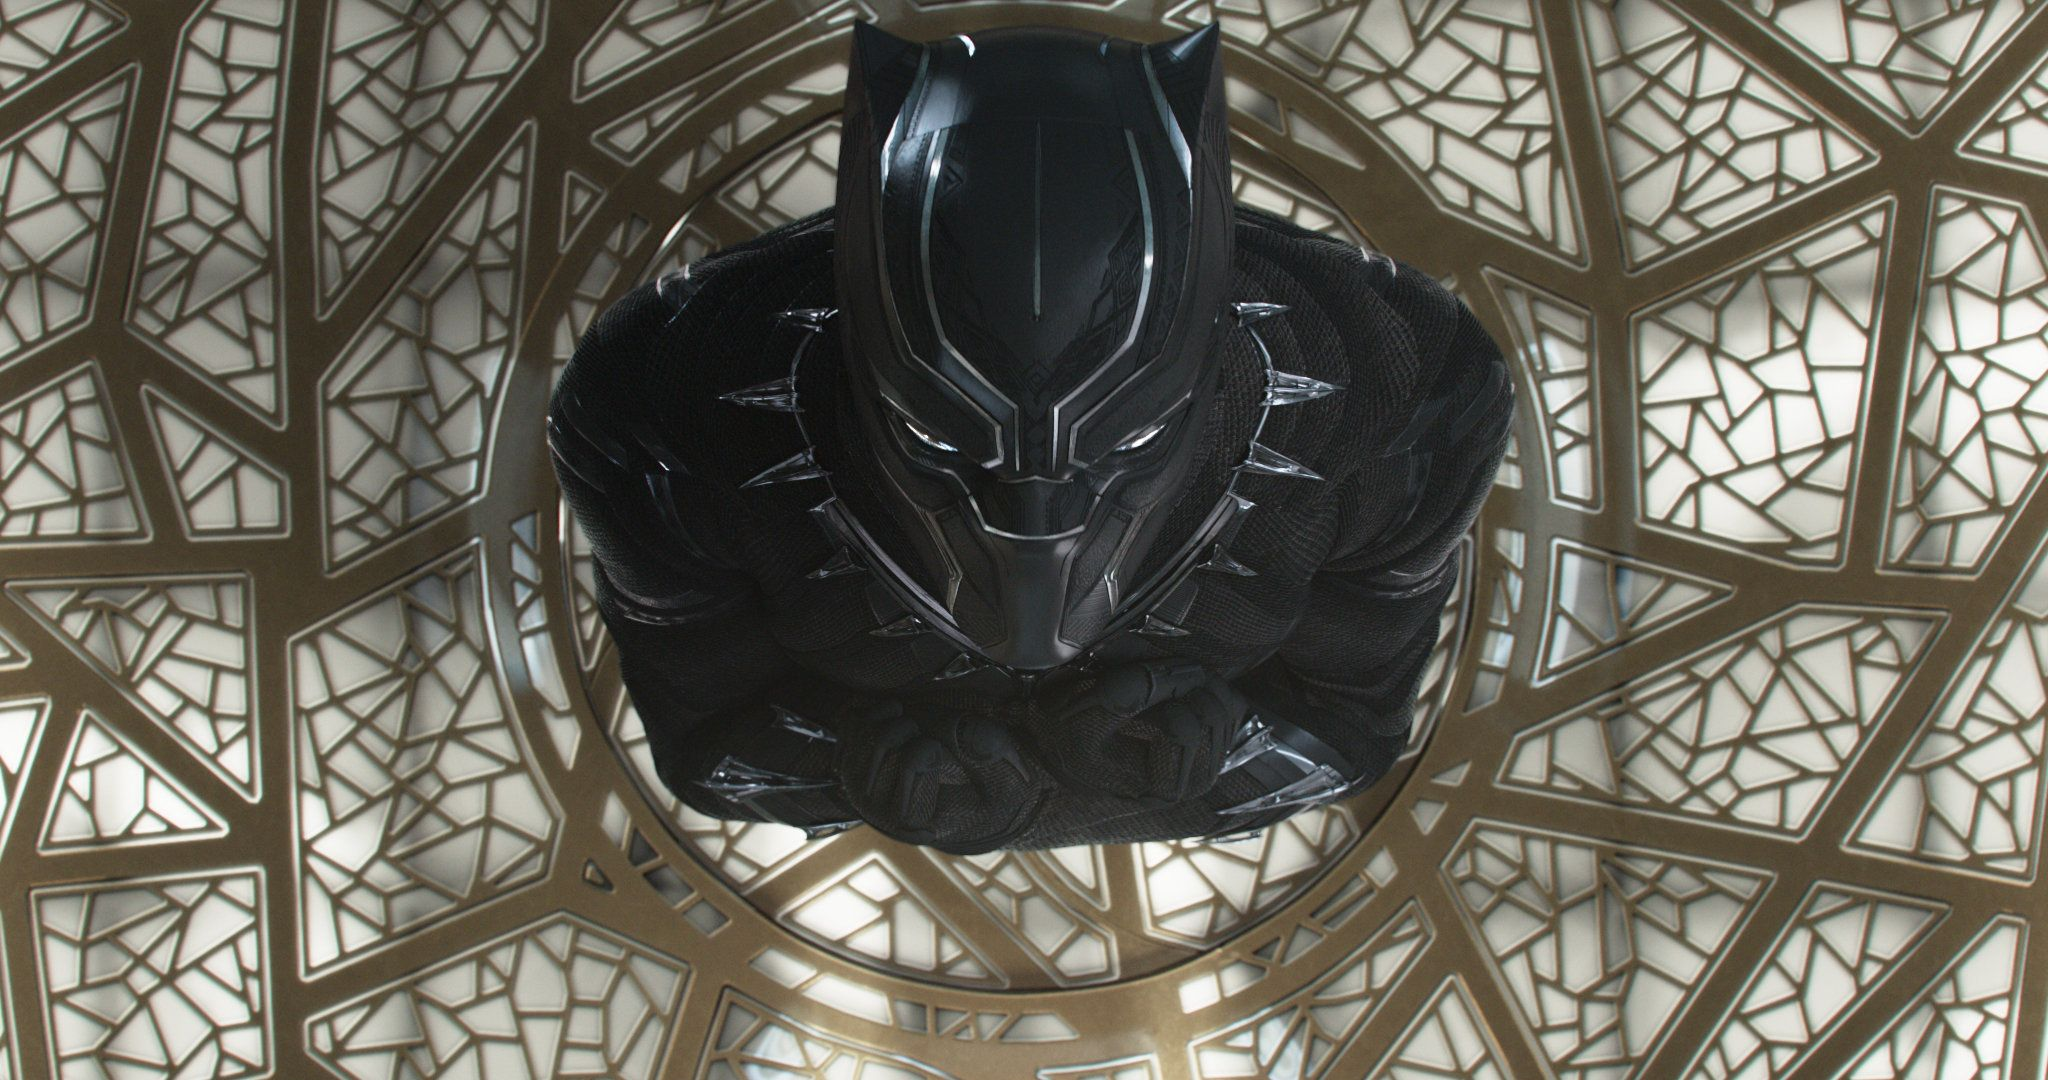 Why I Connect To 'Black Panther' As An Asian